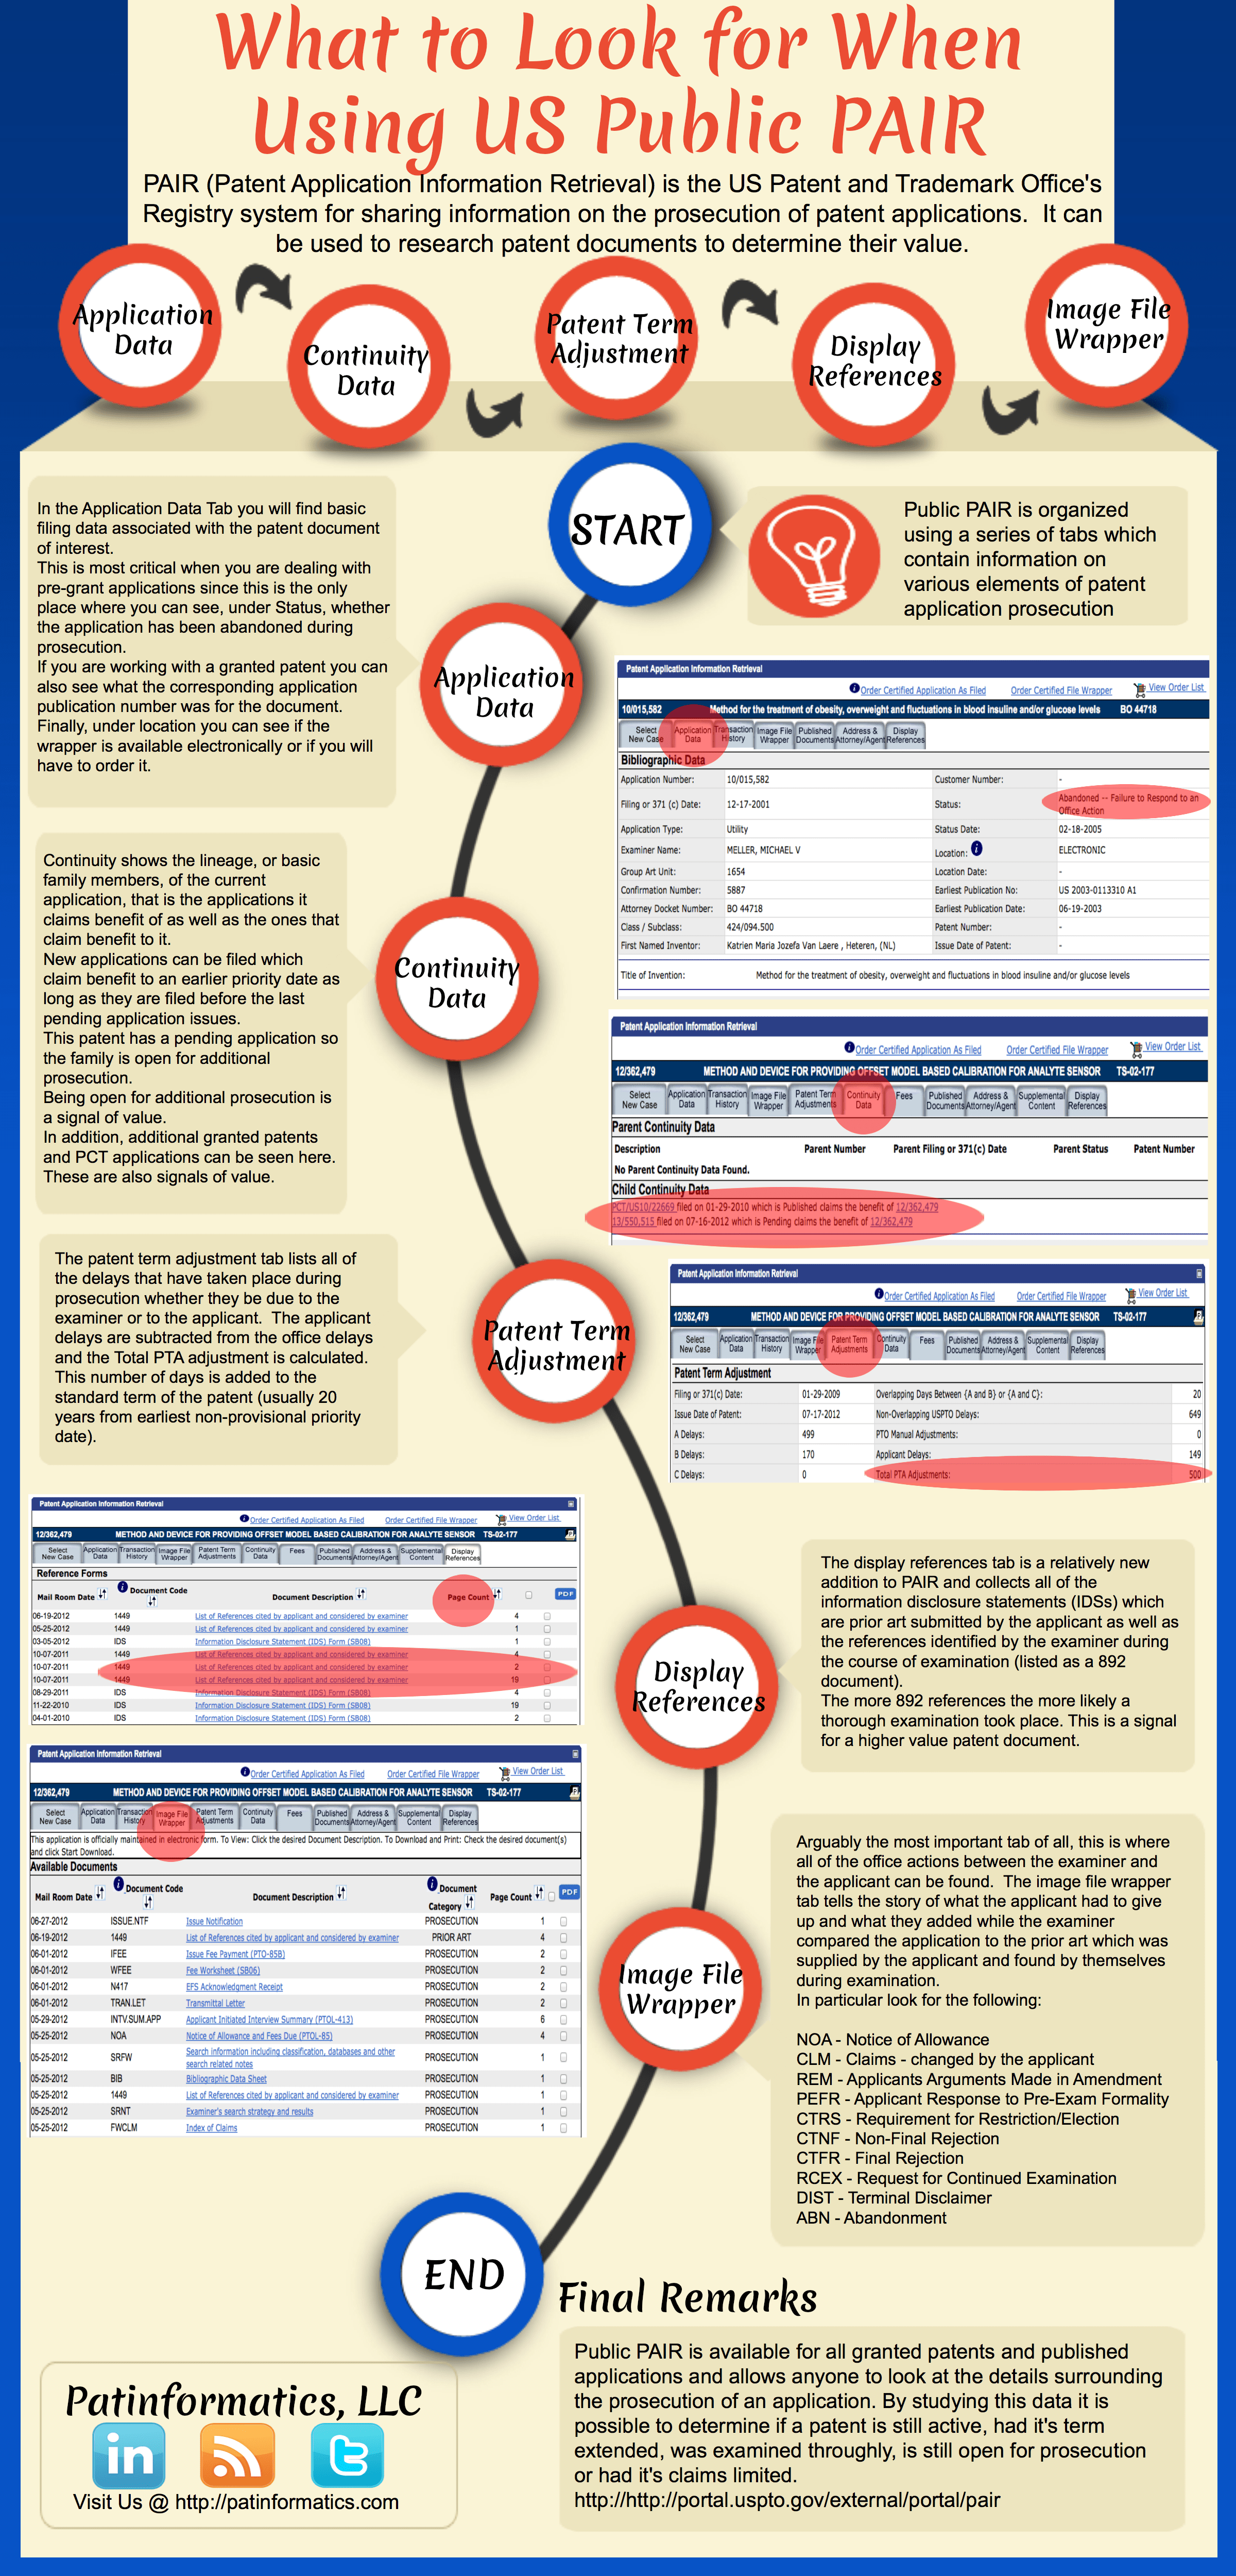 What to look for when using US Public PAIR